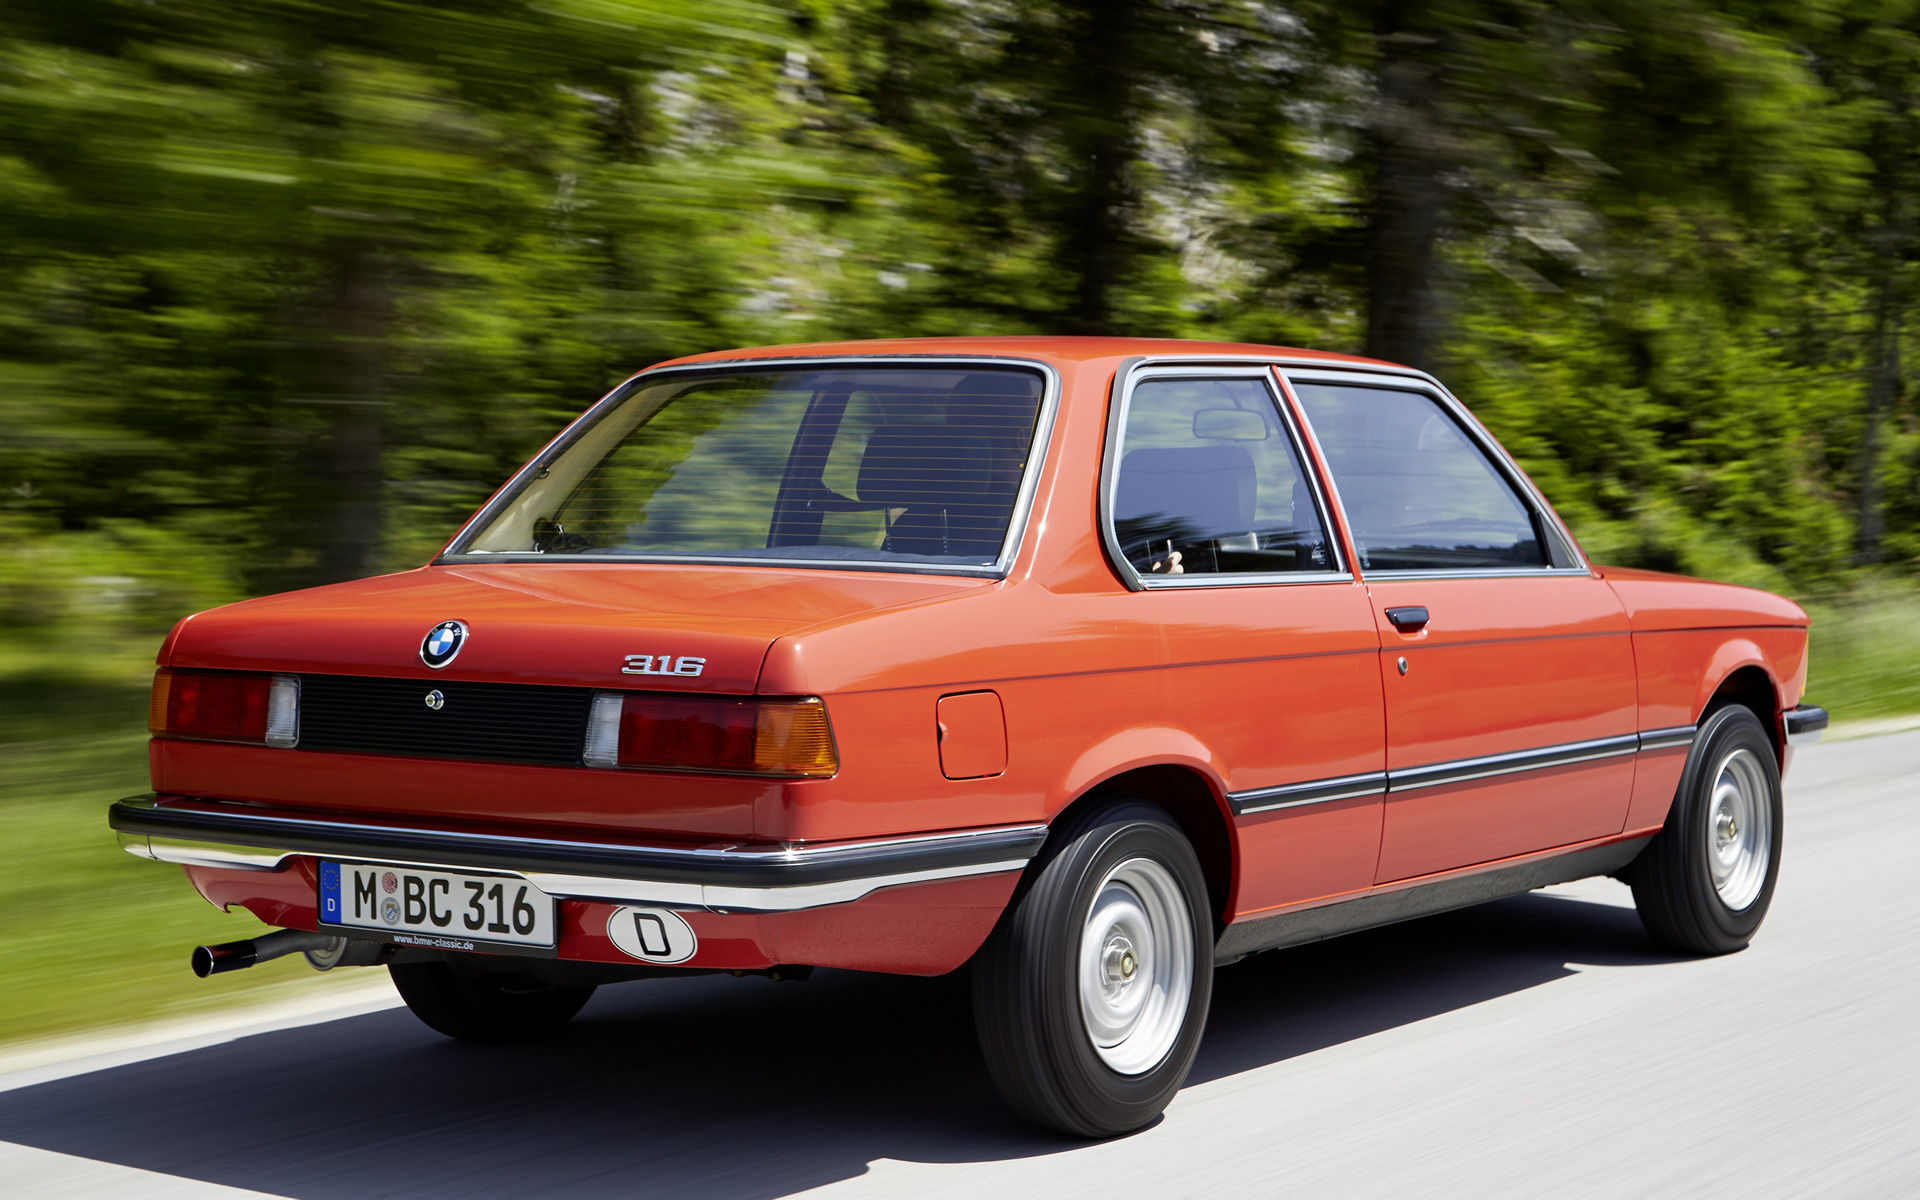 BMW 3 series 316 1979 photo - 6